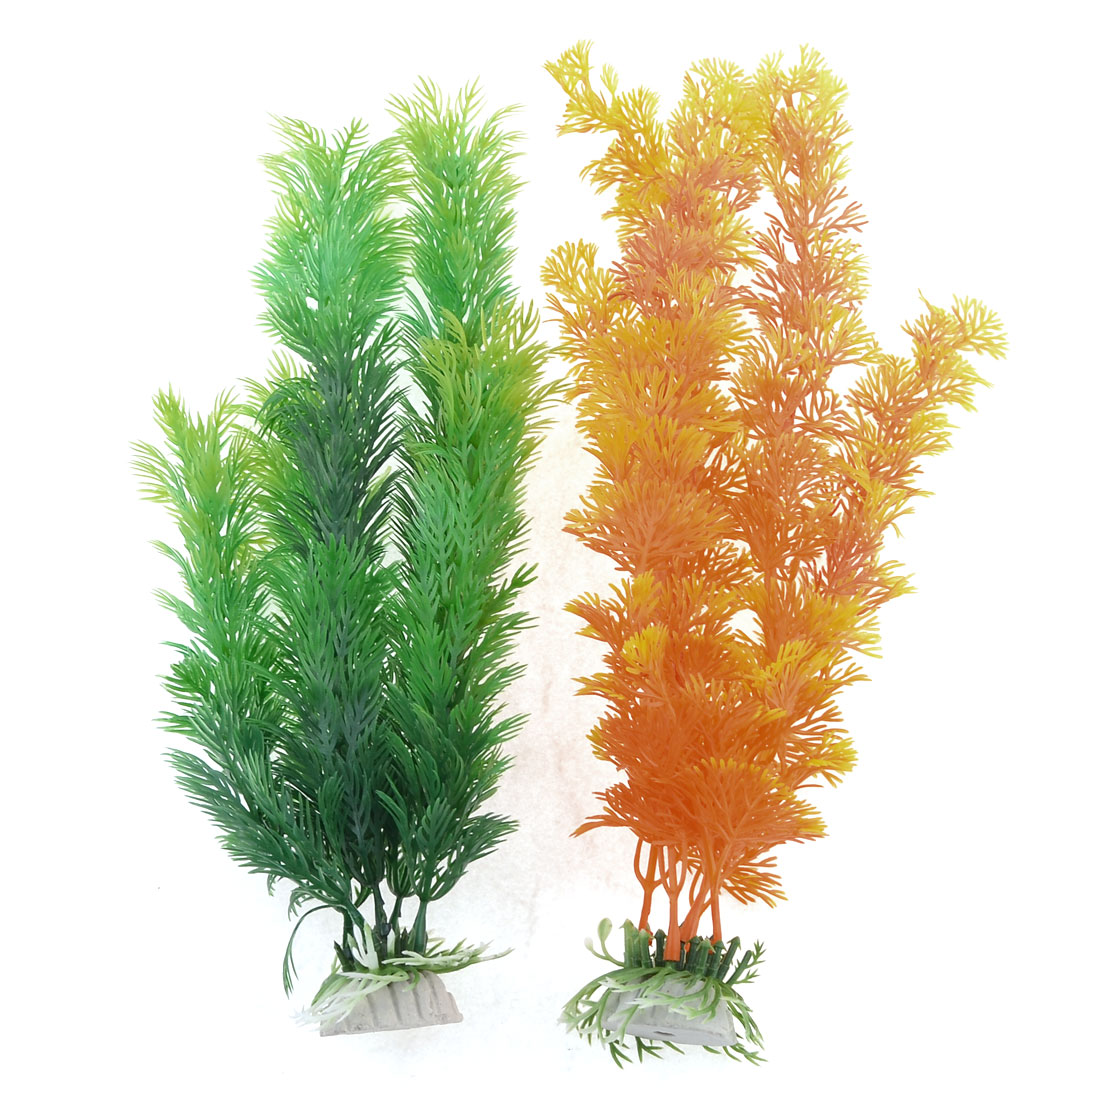 2 Pcs Orange Green Ceramic Base Accent UnderWater plants for Tank